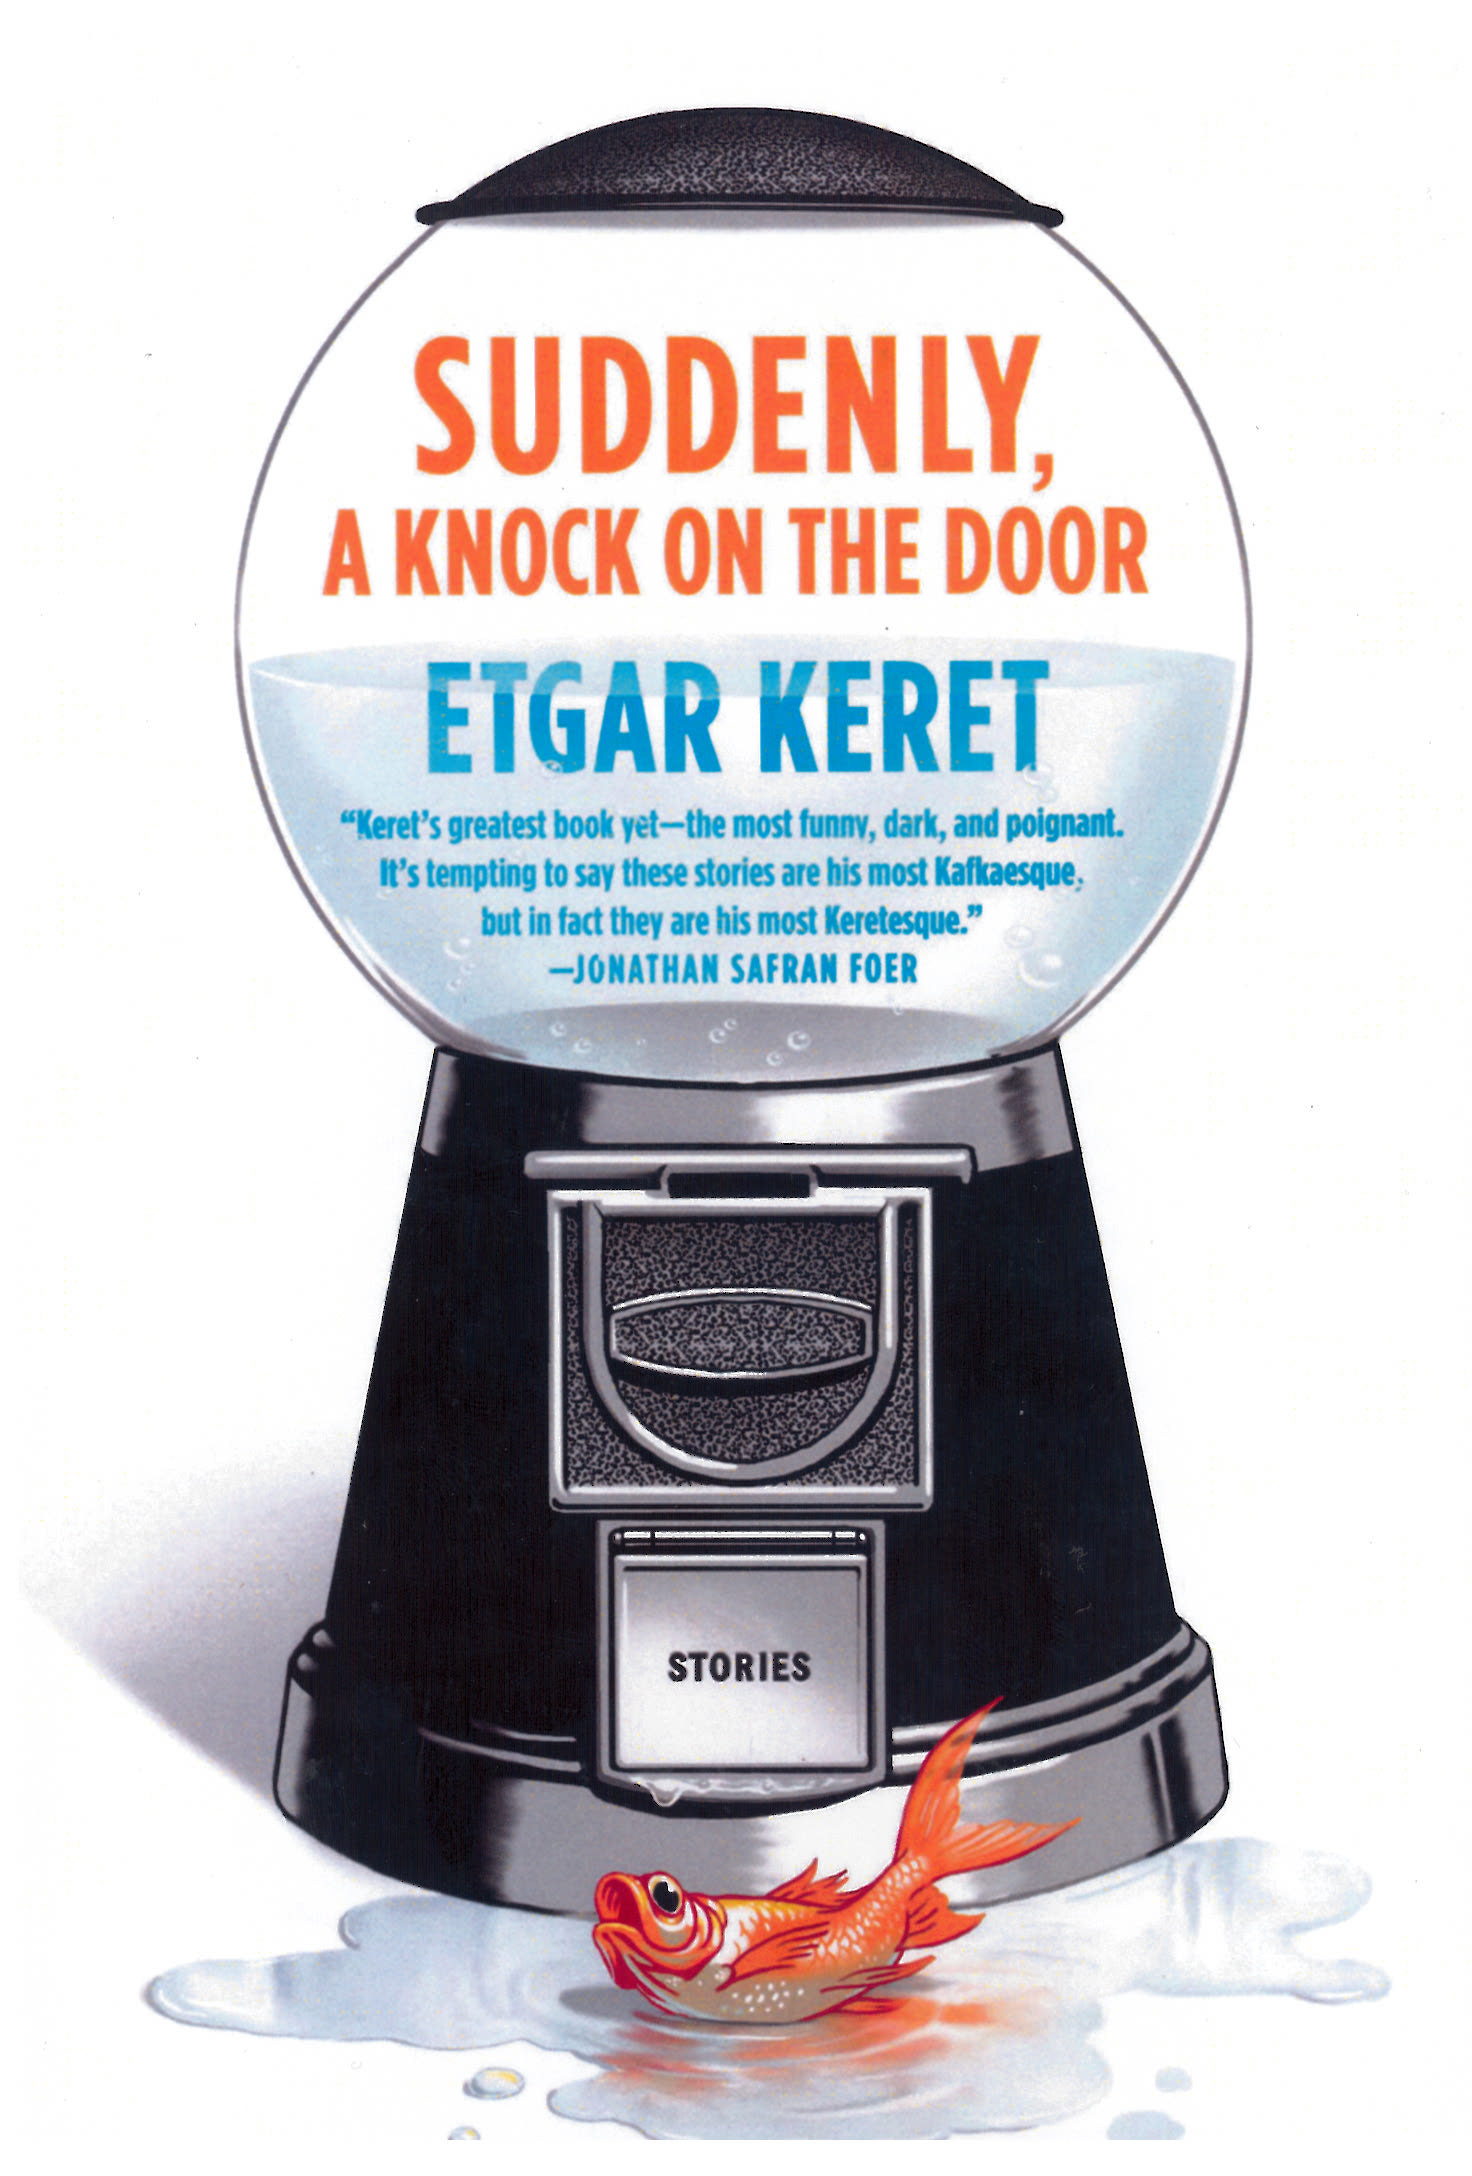 "etgar keret creative writing new yorker ""fly already"" by etgar keret translated from the hebrew by sondar silverson from the may 15, 2017 issue of the new yorker i first encountered etgar keret in 2012 when the new yorker published his story ""creative writing"" (our thoughts here) over the years he's published a few other stories, and i've generally been a fan."